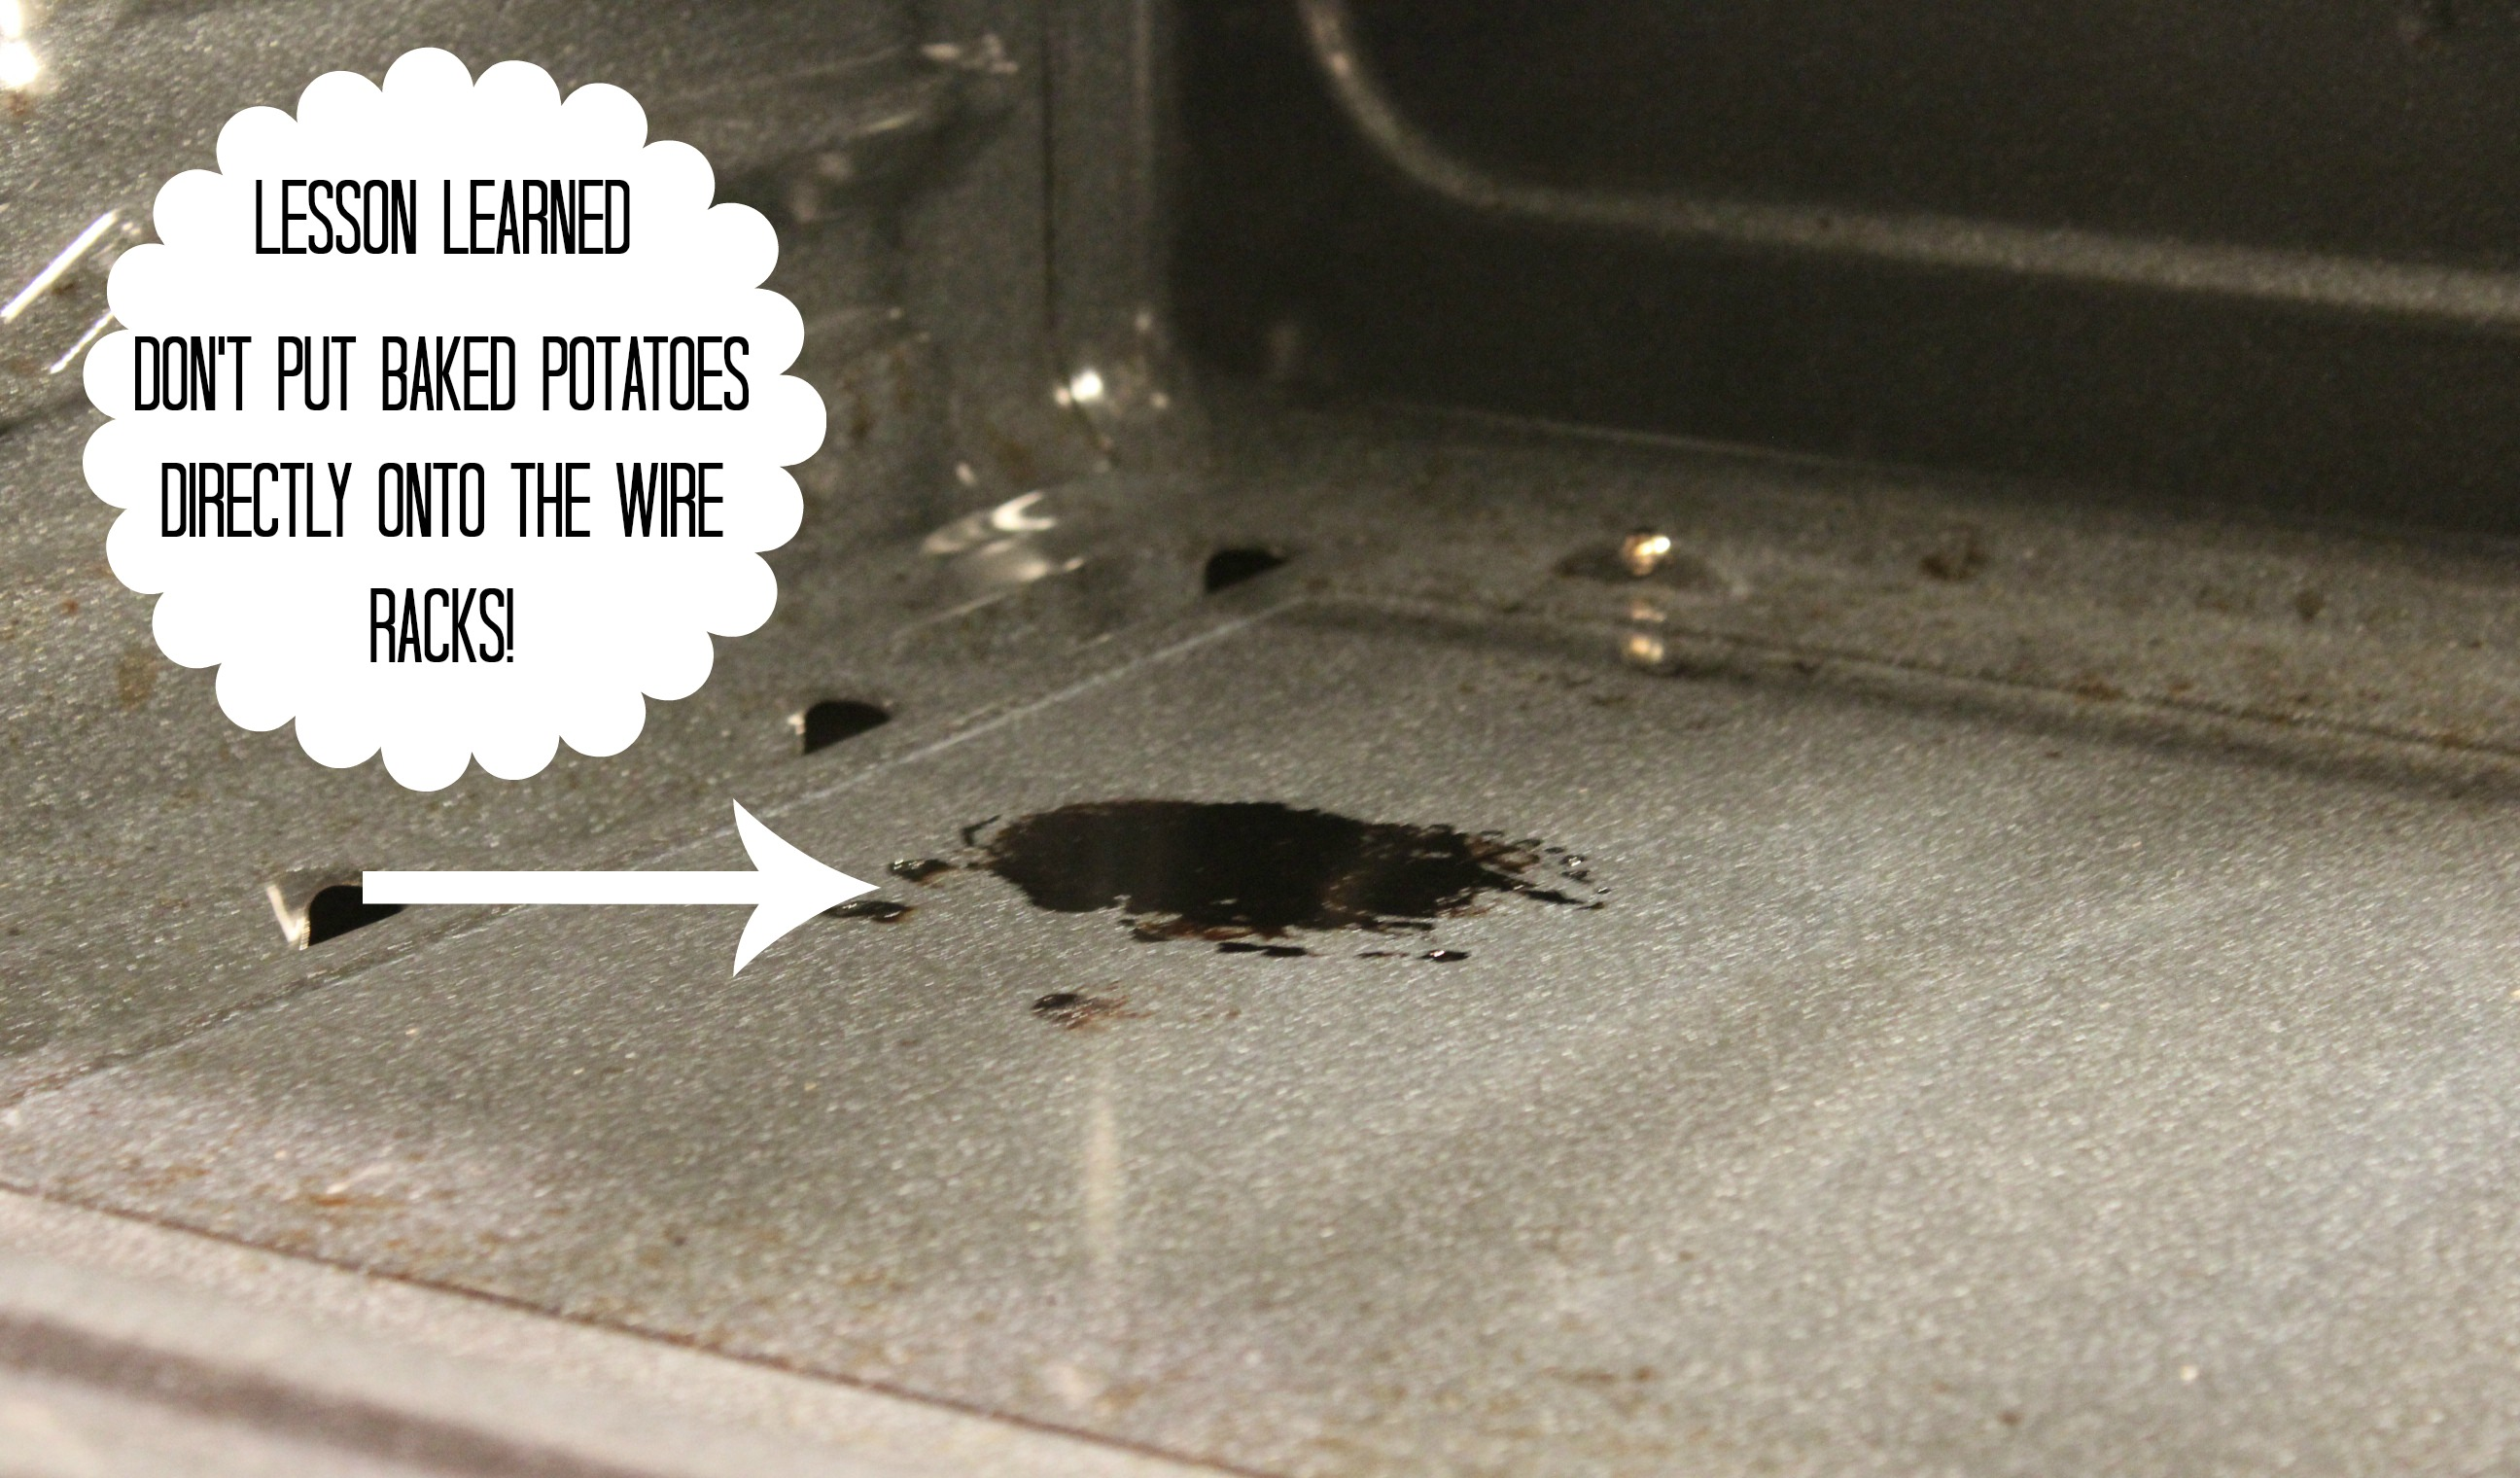 Easy Off Oven Cleaner